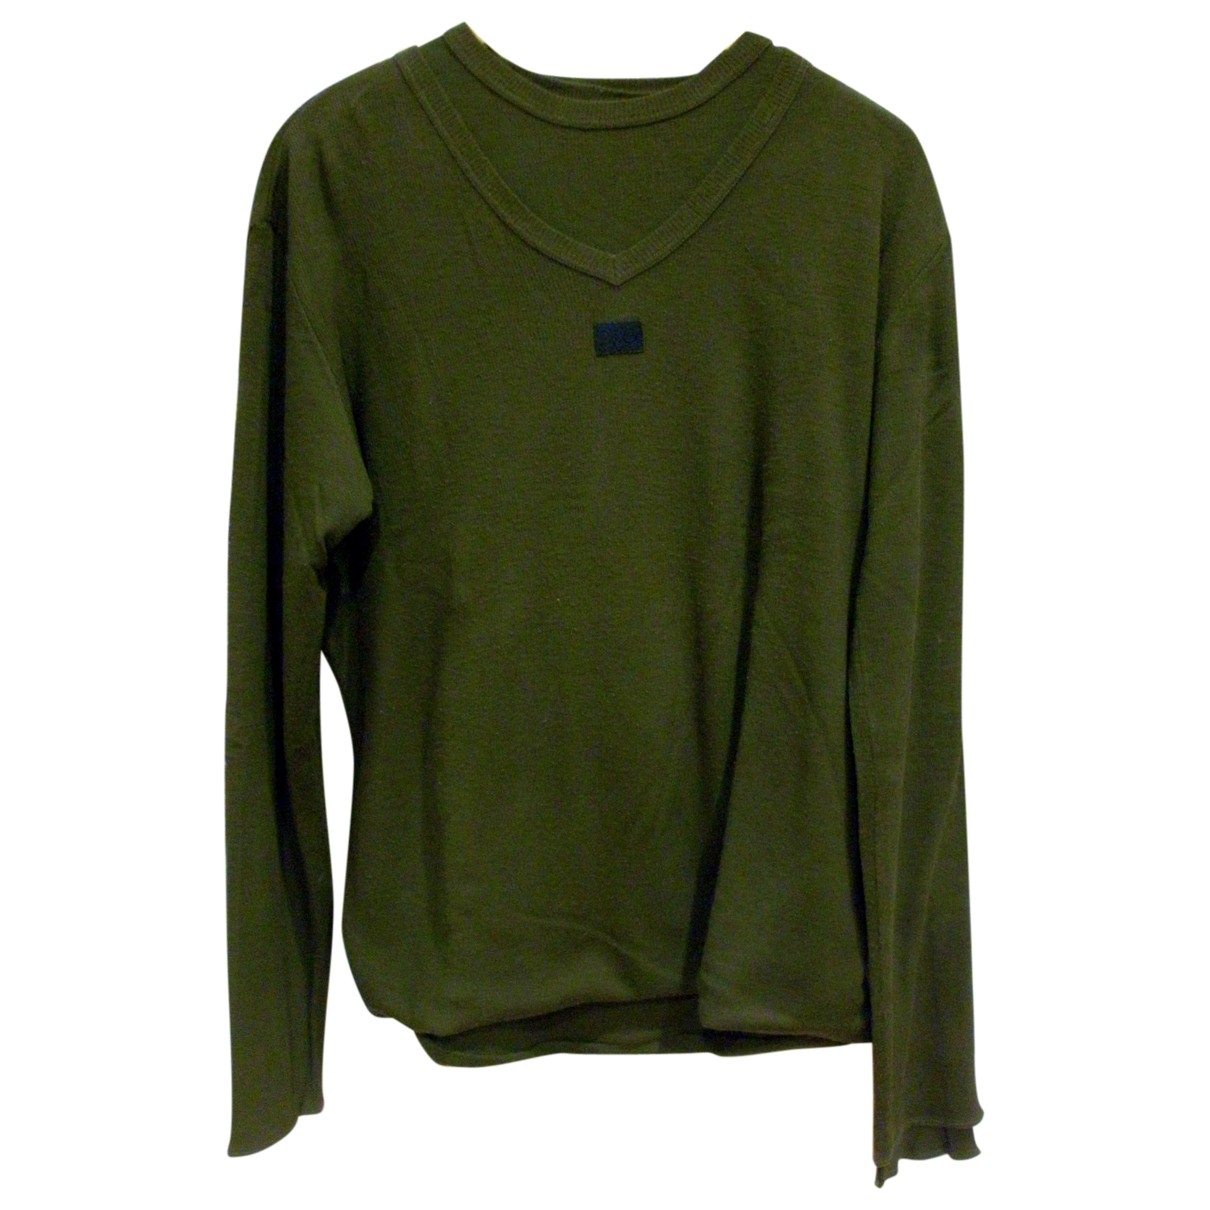 D&g \N Green Knitwear & Sweatshirts for Men 50 IT